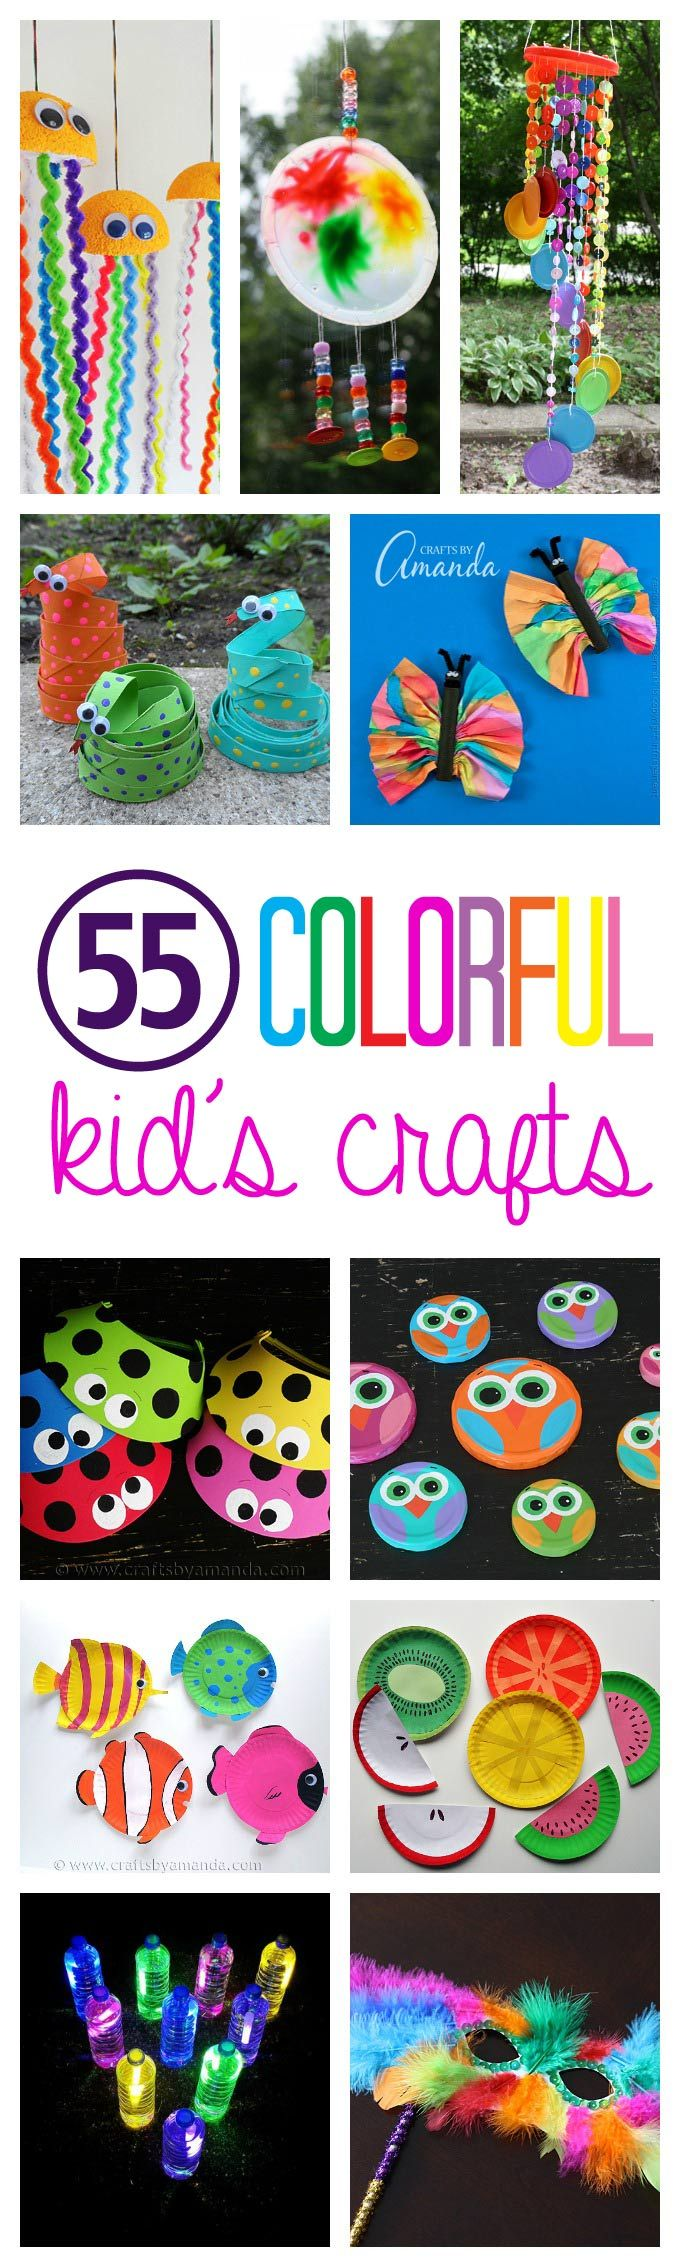 Delightful Cheap Arts And Crafts Ideas For Kids Part - 12: Colorful Kidu0027s Crafts - More Than 55 Colorful Craft Ideas Colorful Kidu0027s  Crafts: Make Cute Monsters From Recycled Materials And Other Supplies.